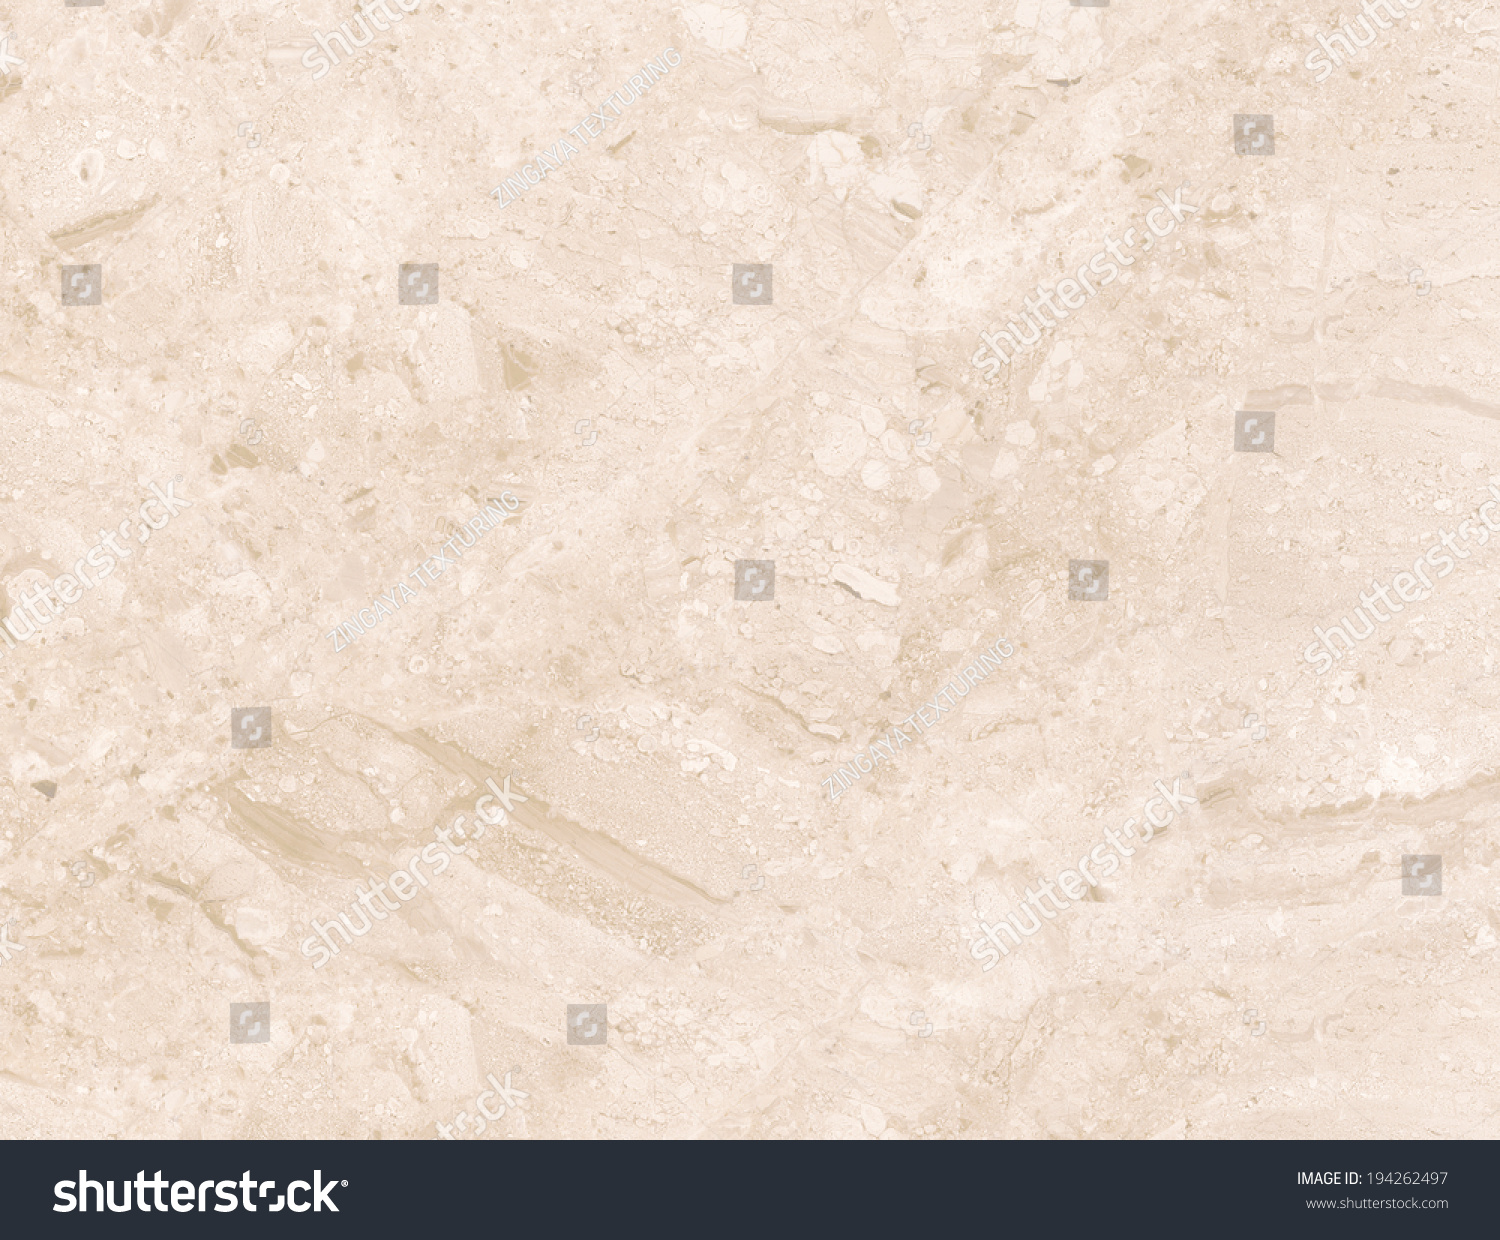 Marble Texture Beige Stone Background Travertine Stock ...